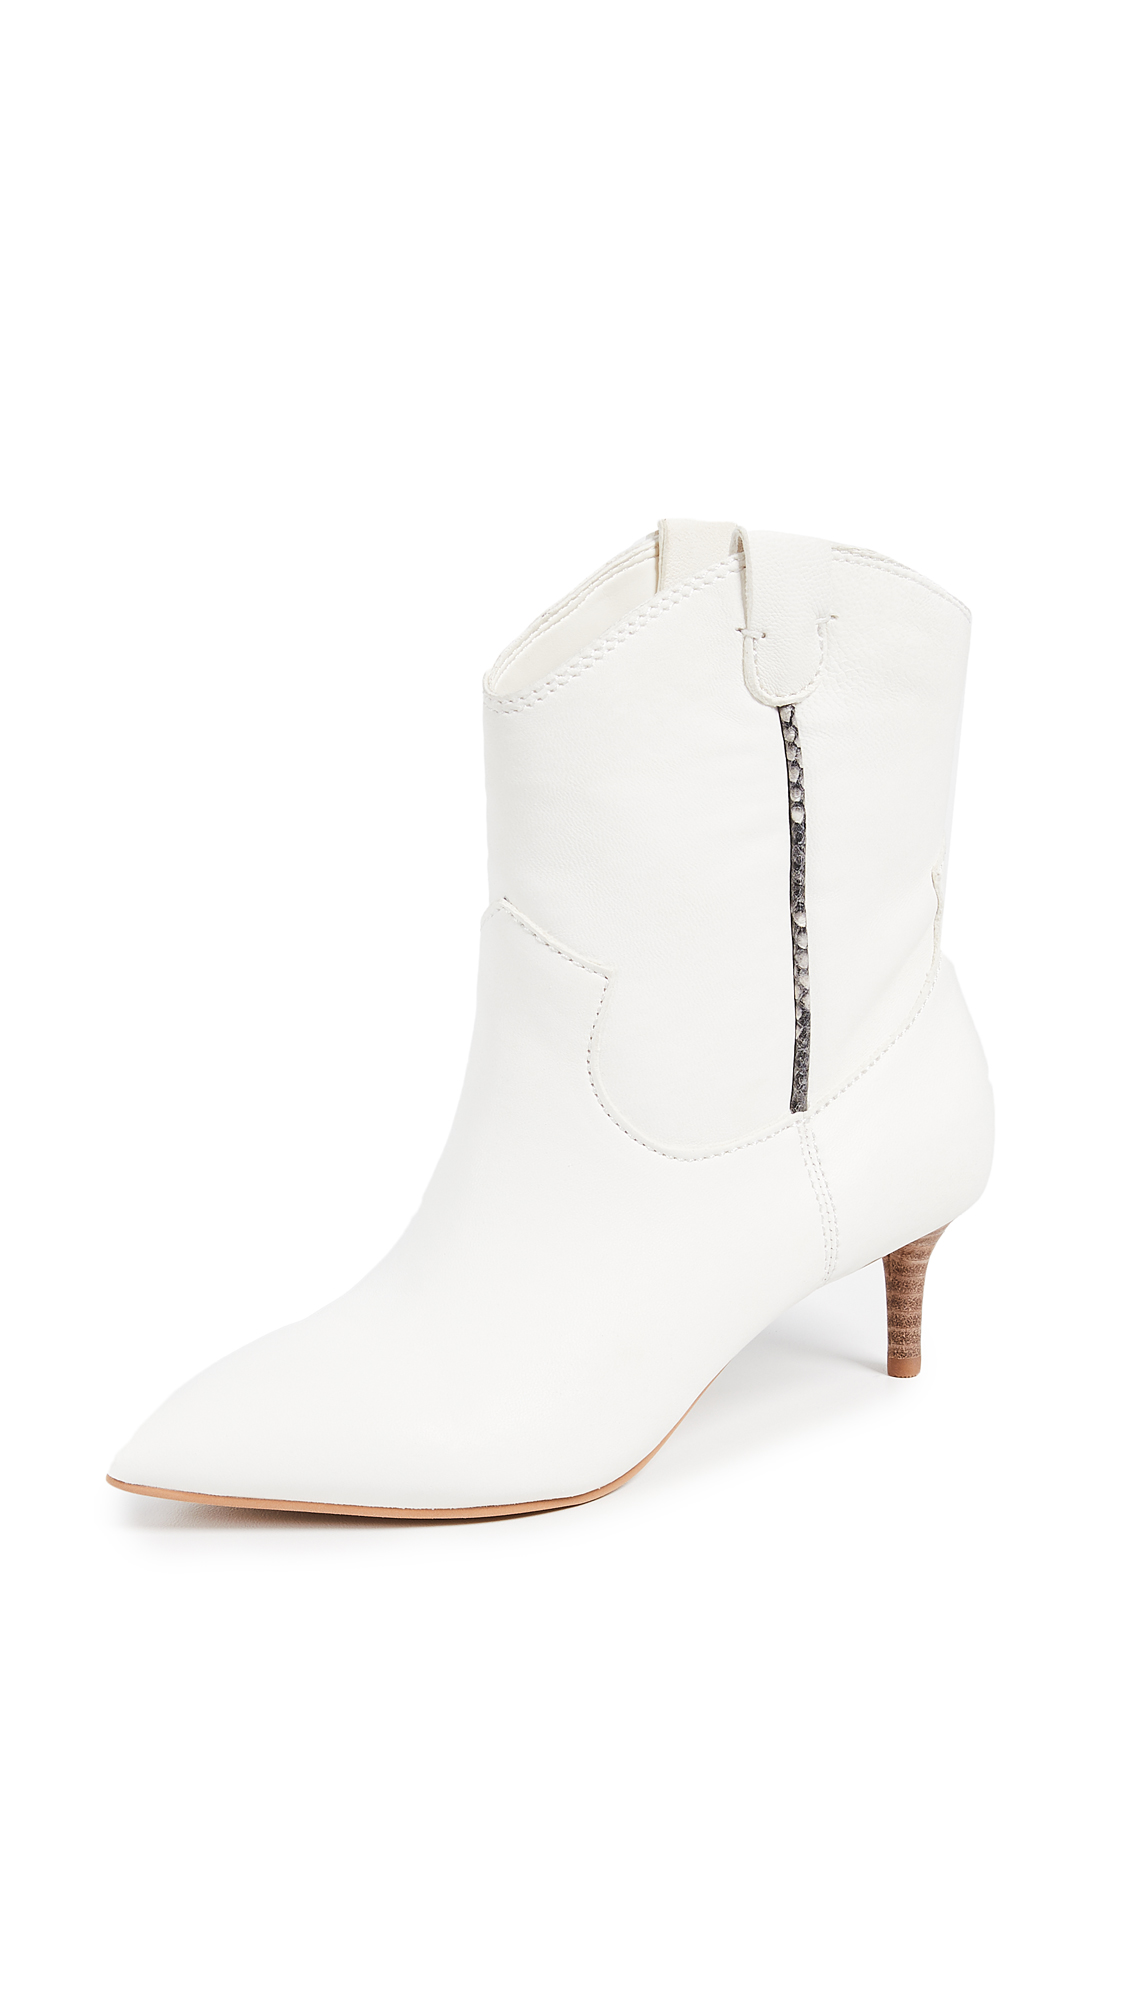 Dolce Vita Reece Point Toe Booties - Off White